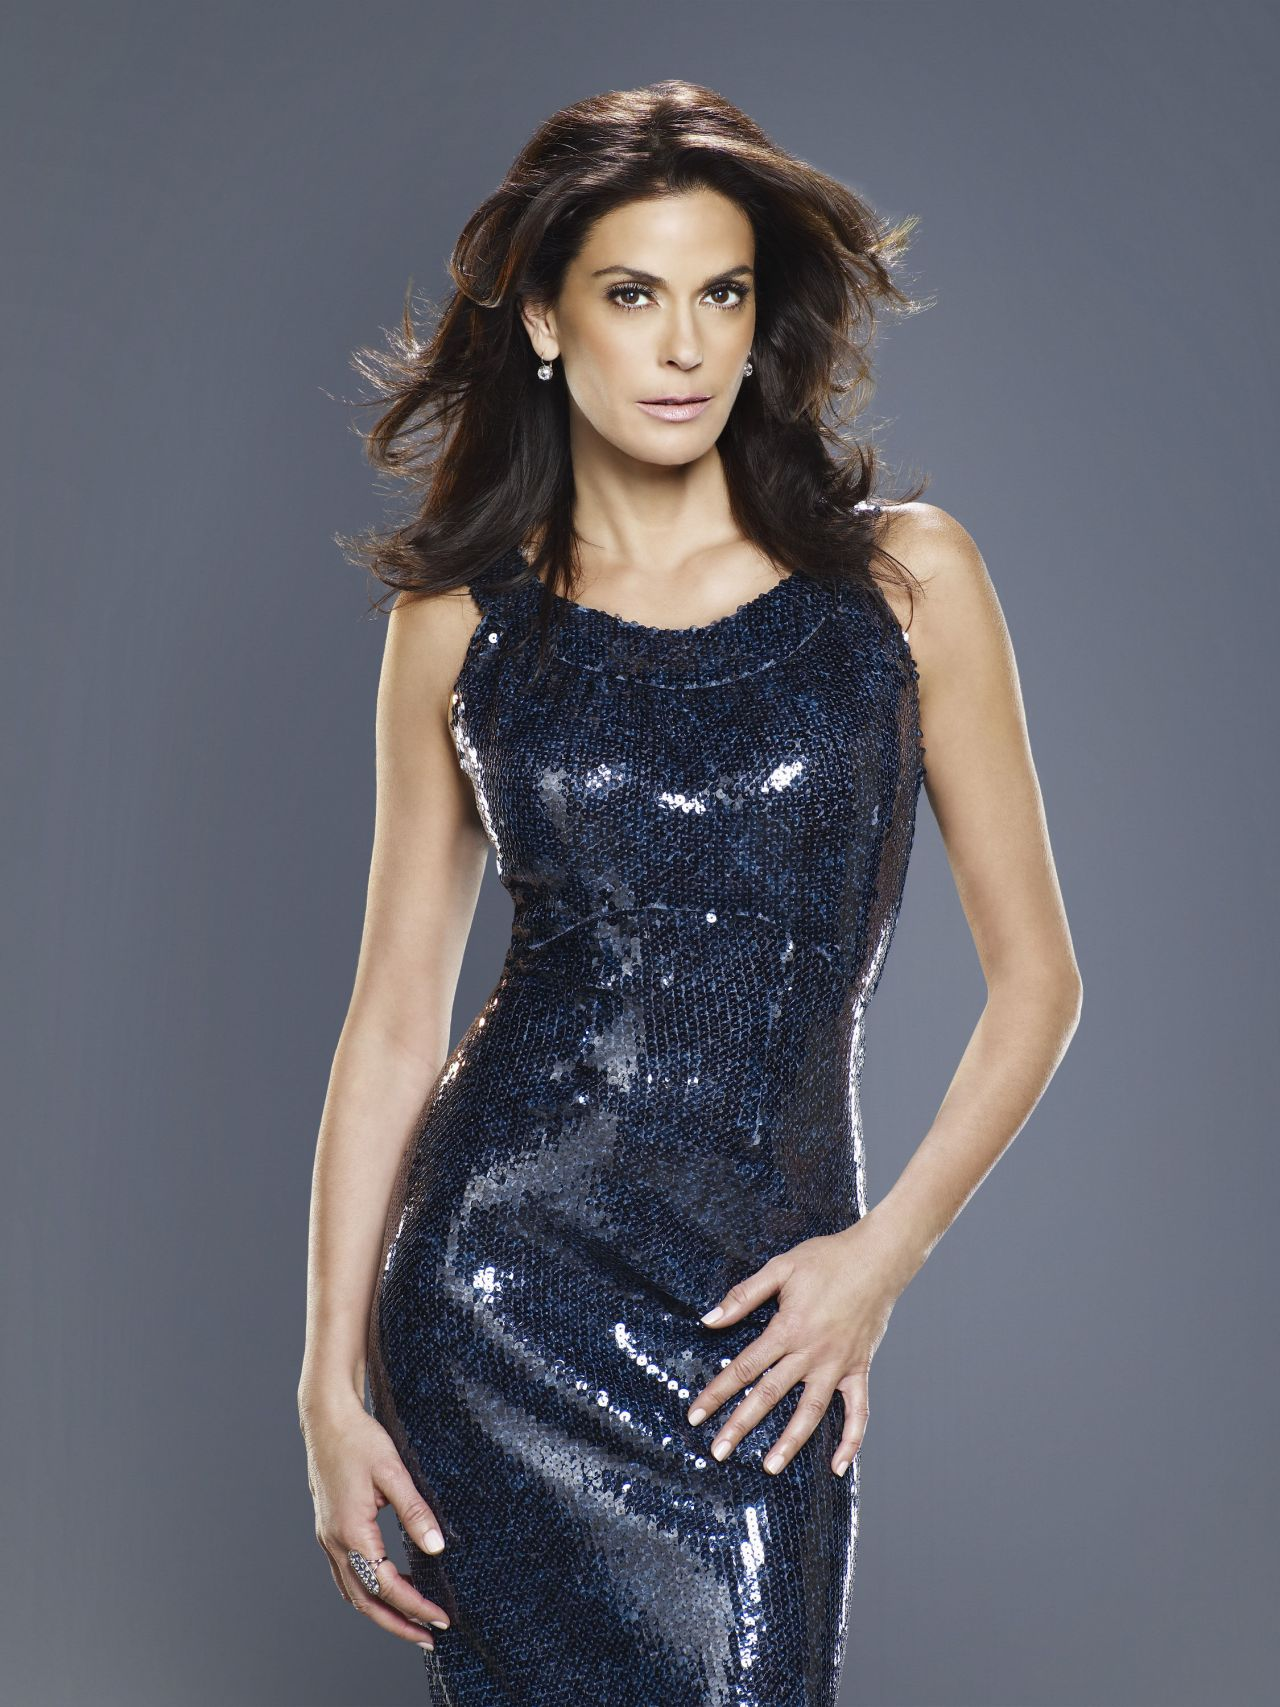 Teri Hatcher Desperate Housewives Season 6 Promoshoot Celebmafia Watch desperate housewives season 6 full episodes online free kissseries. teri hatcher desperate housewives